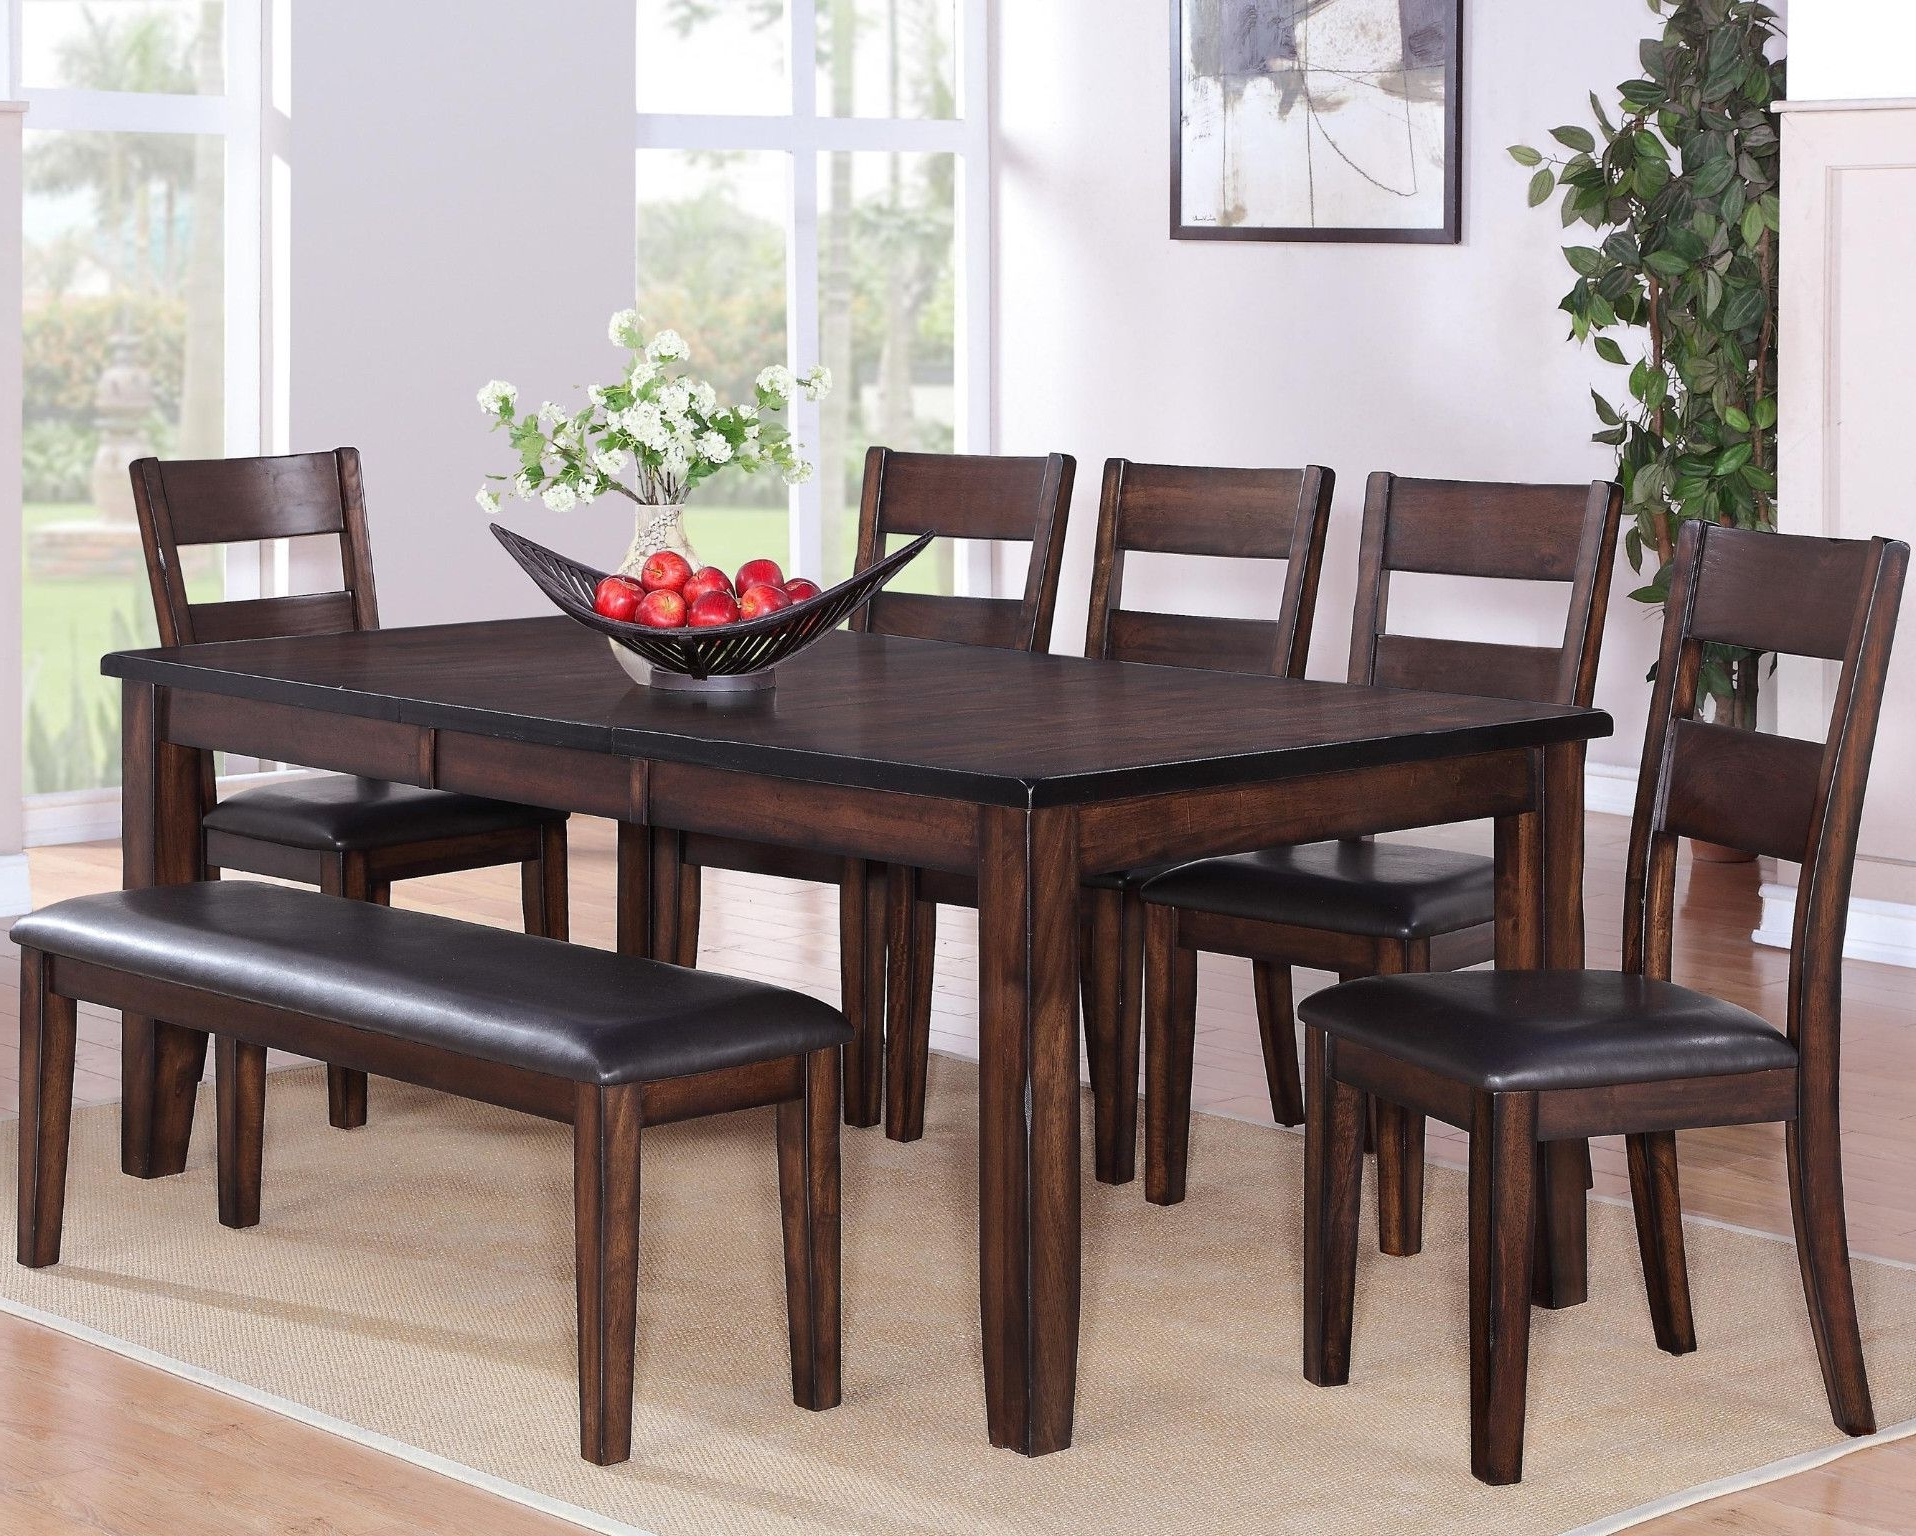 Valencia 5 Piece 60 Inch Round Dining Sets In Current Maldives 5 Piece Dinette Table And 4 Chairs $699.00 Table $ (View 10 of 25)